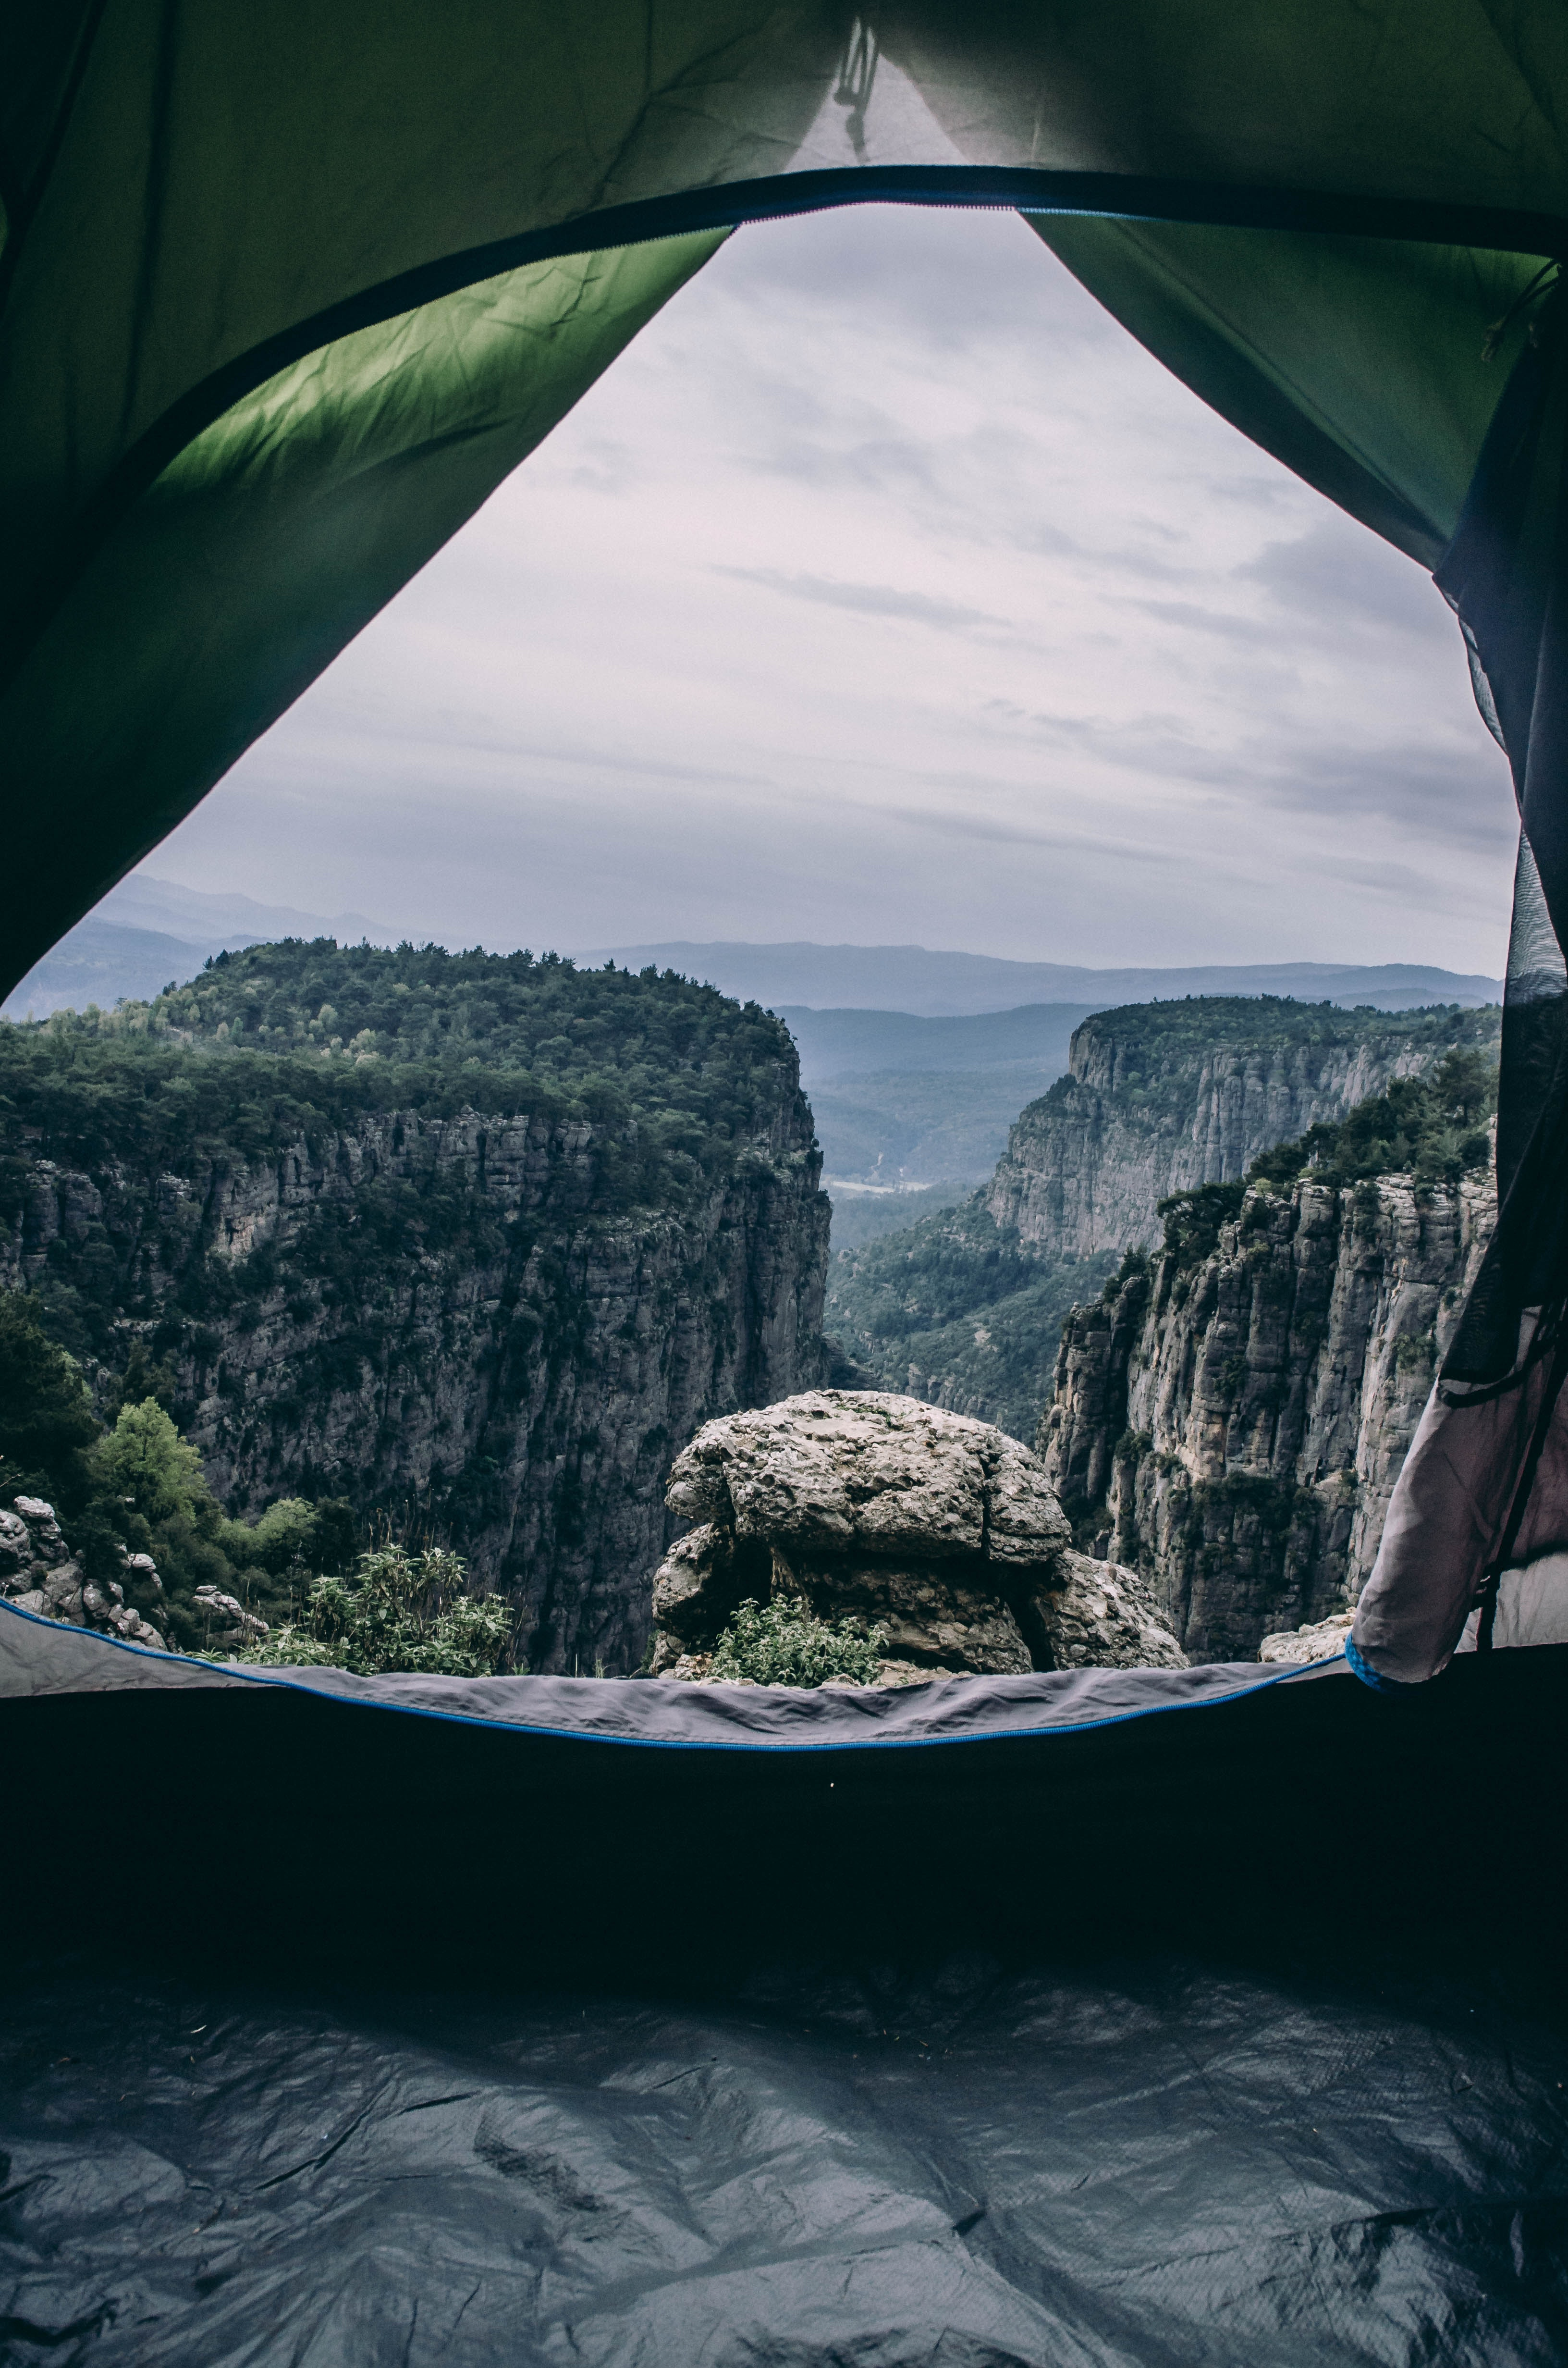 A person inside a dome tent on a cliff